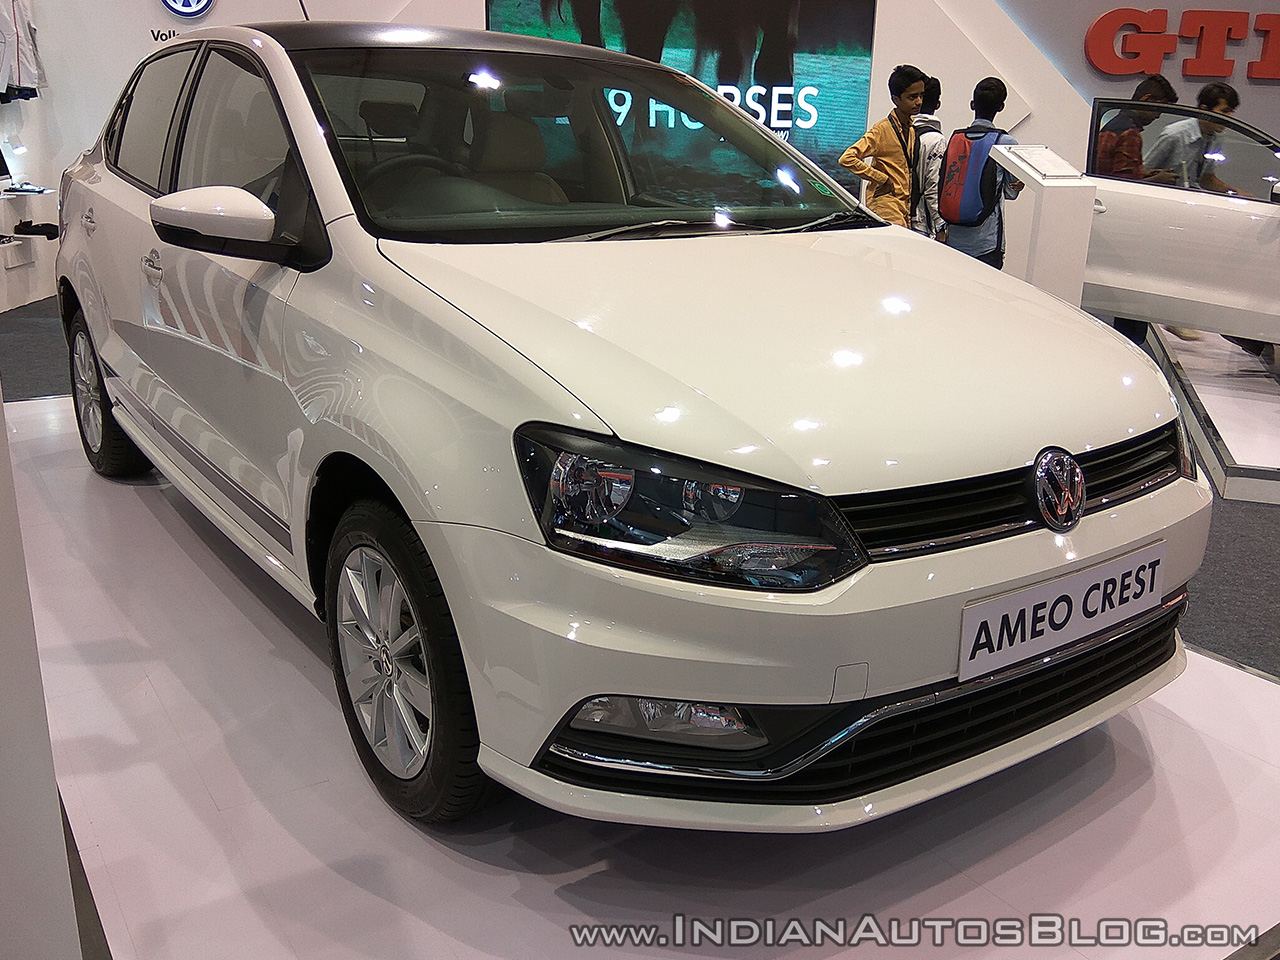 VW Ameo Crest front